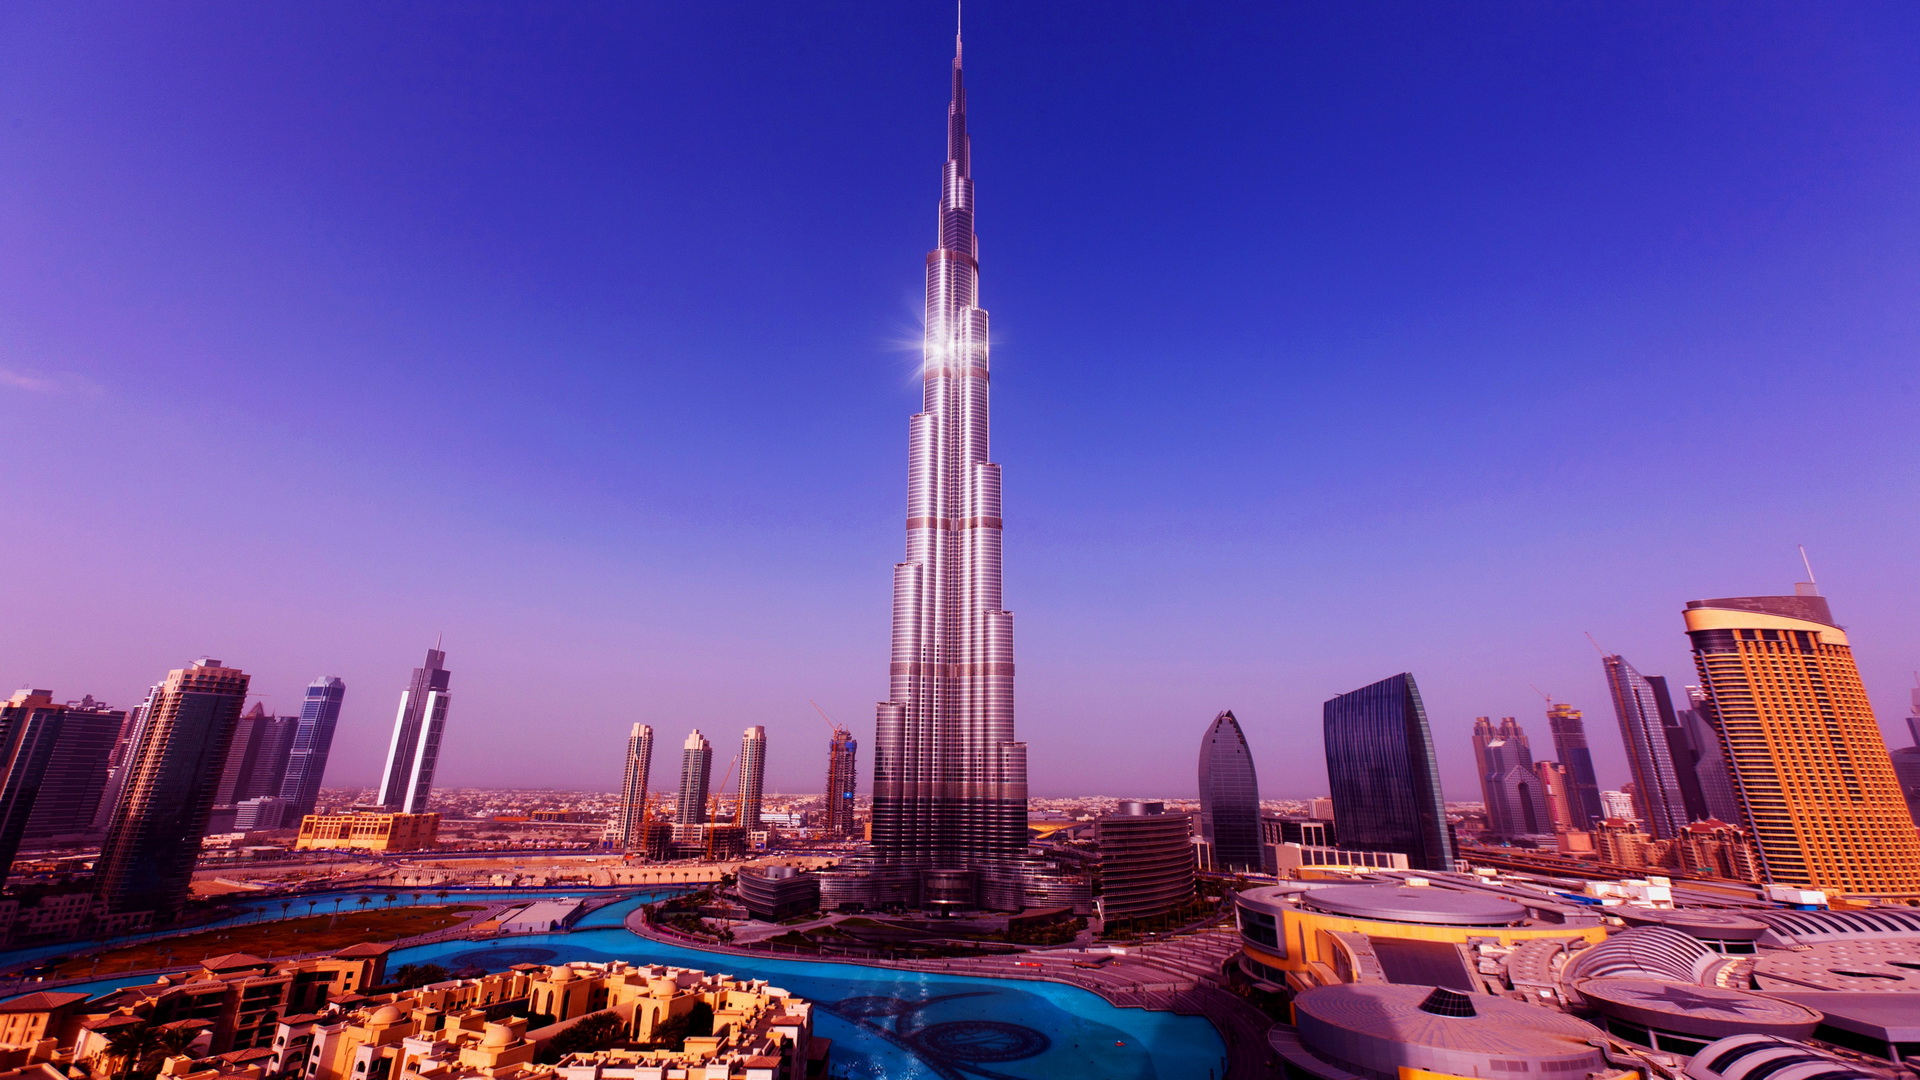 Burj-Khalifa-Dubai-Skyline-Android-free-download-wallpaper-wpc5803097